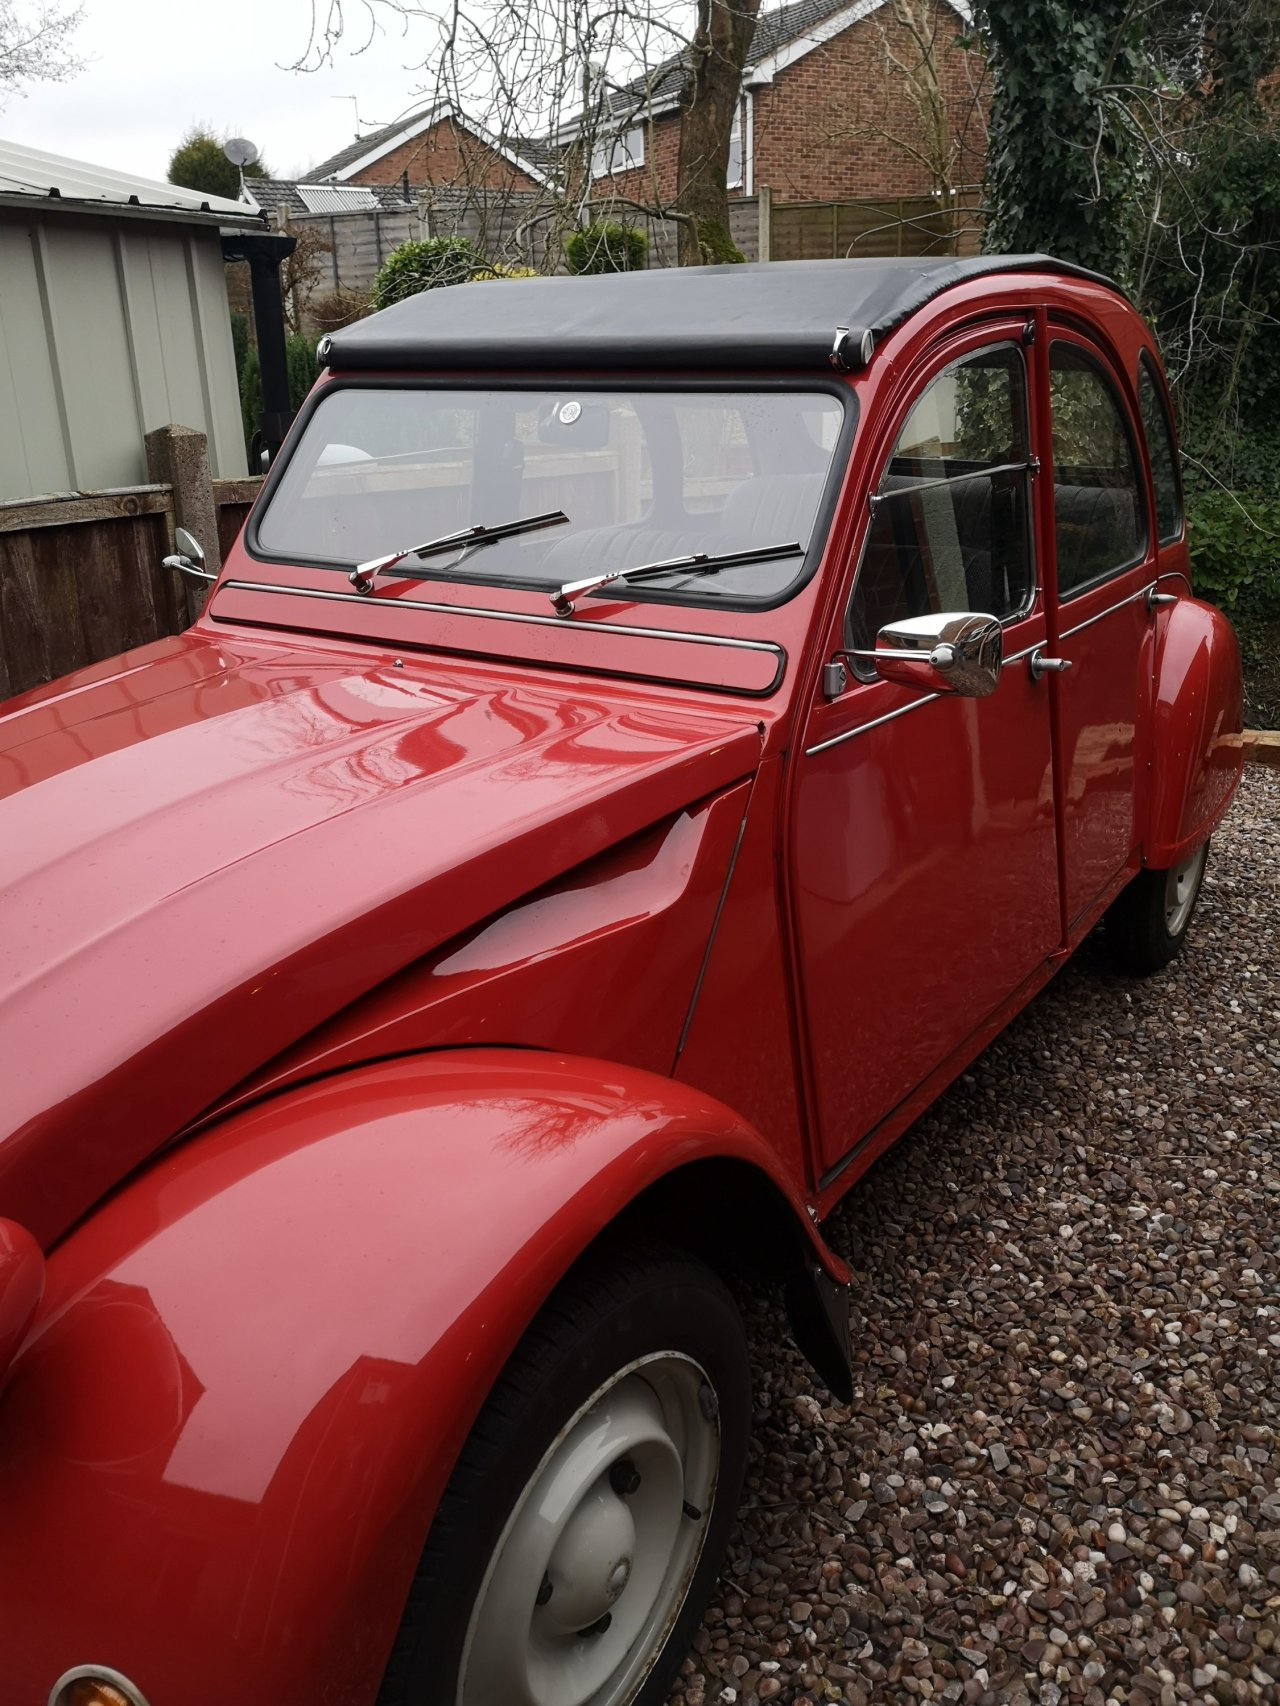 Say hello to Rose the 2CV